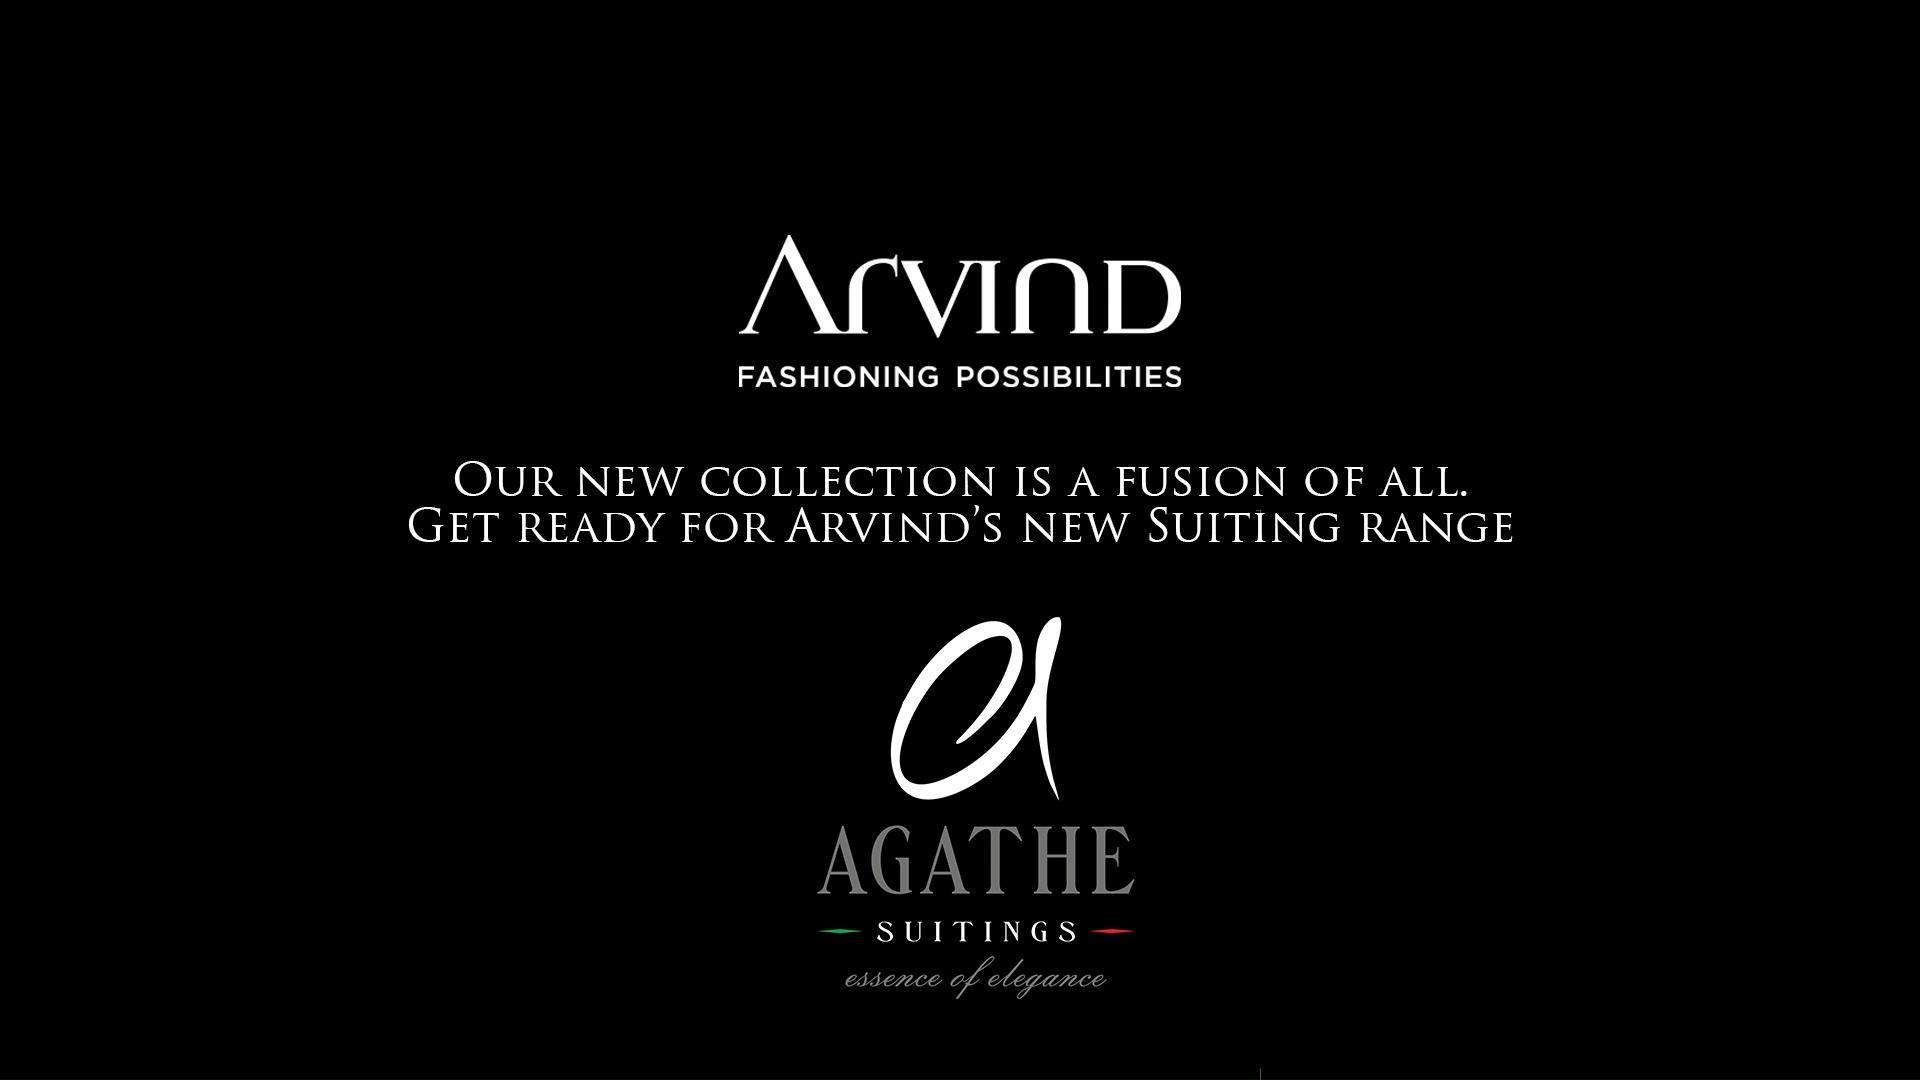 The new Suiting language of Arvind. A collection of subtle and elegant designs, custom-made to suit fast fashion, get ready for Agathe.